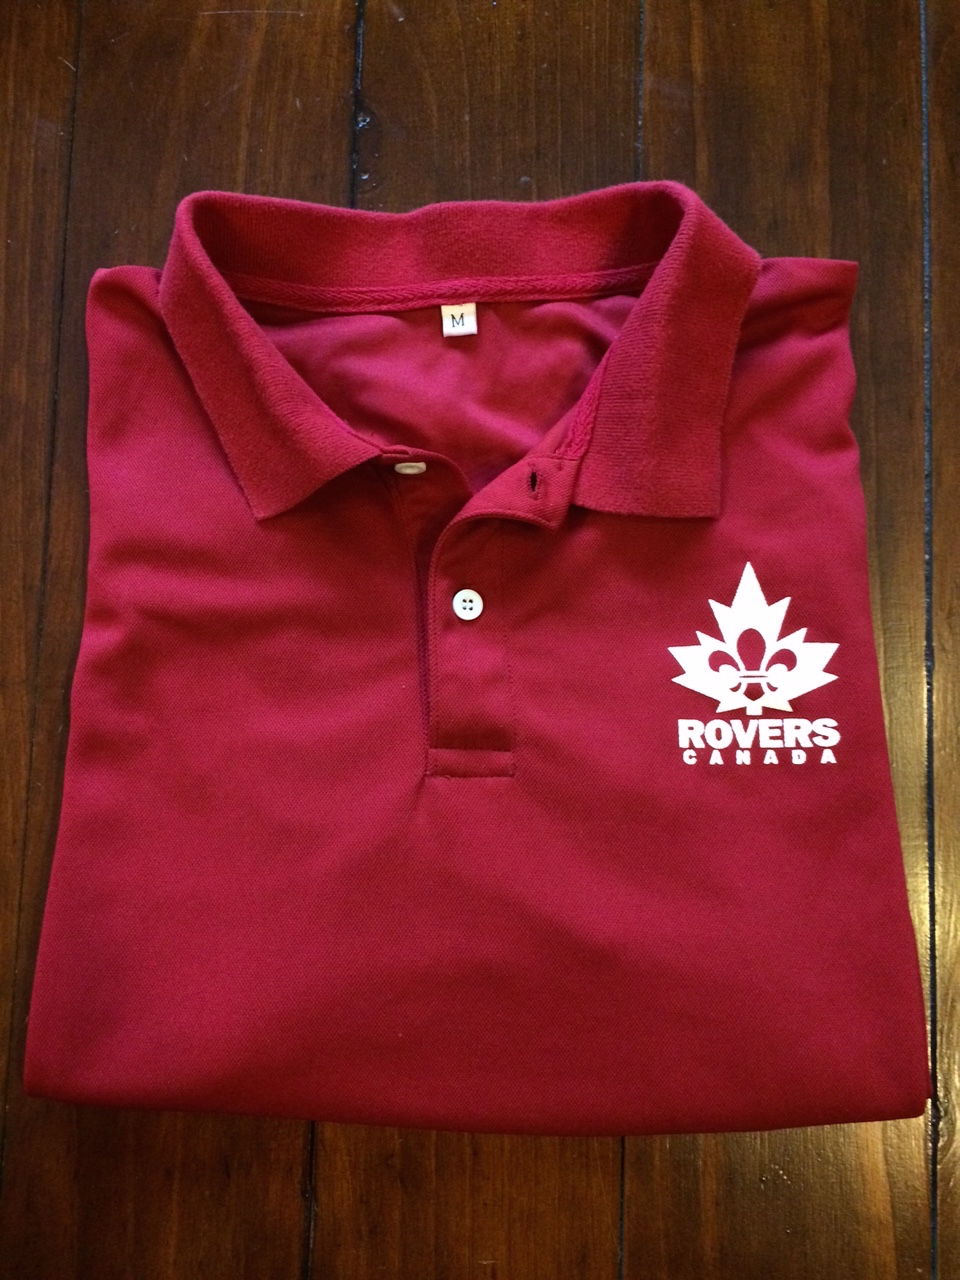 Our red Rover Polo's are a sensible activity uniform option.